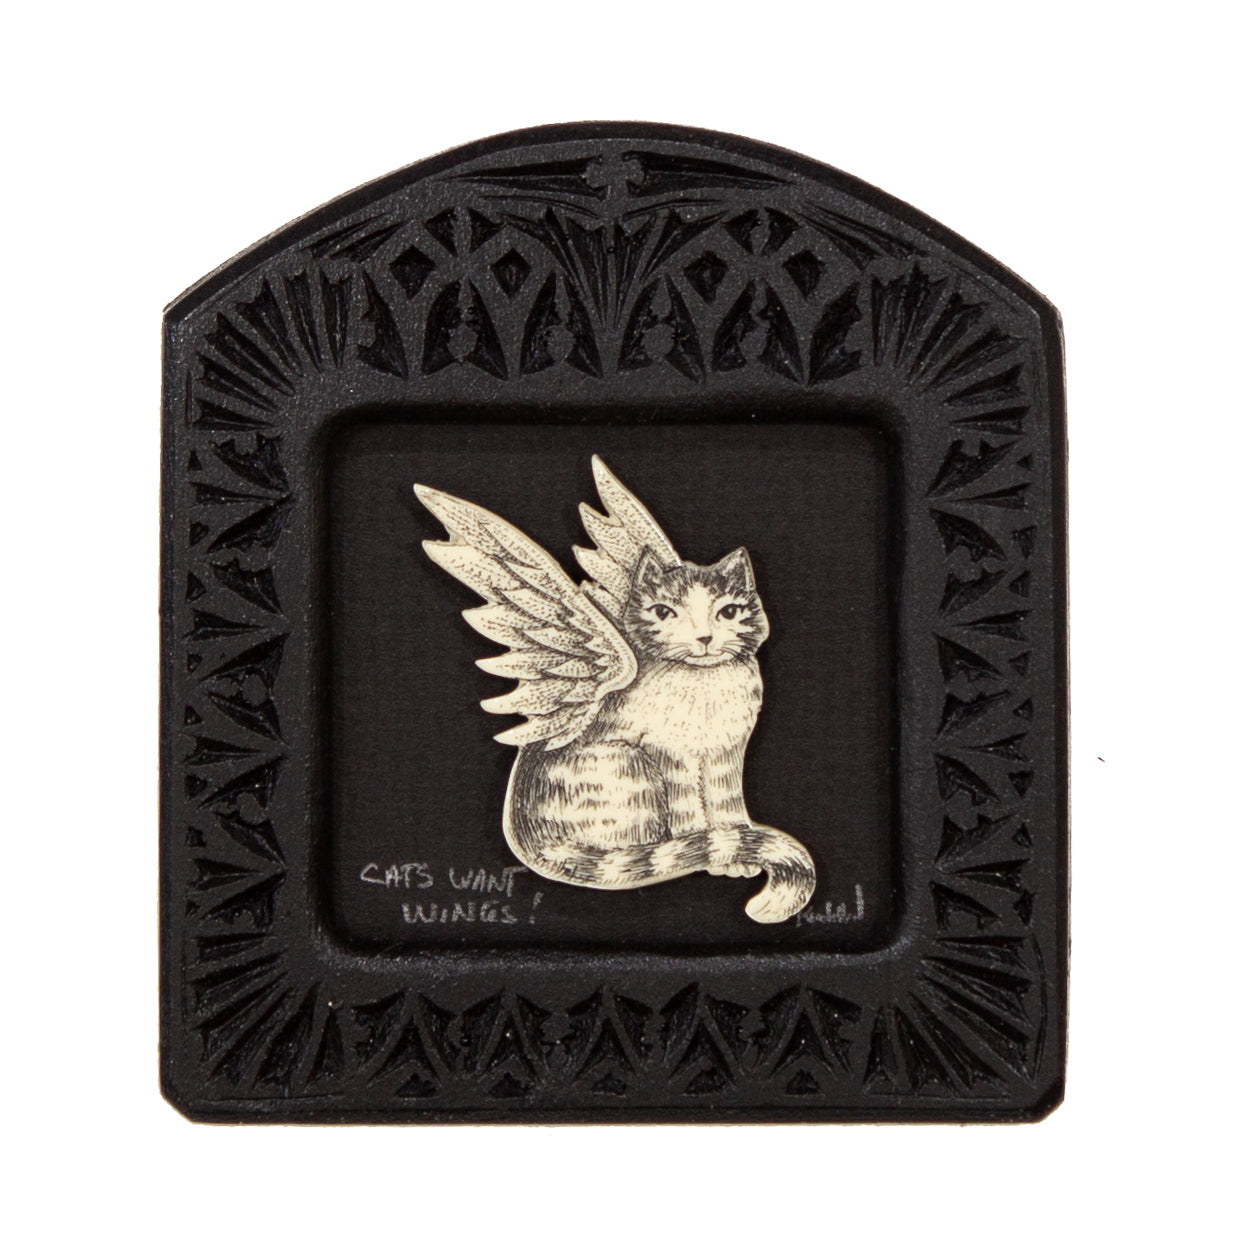 """Cats Want Wings!"" Small Chip Carved Frame"